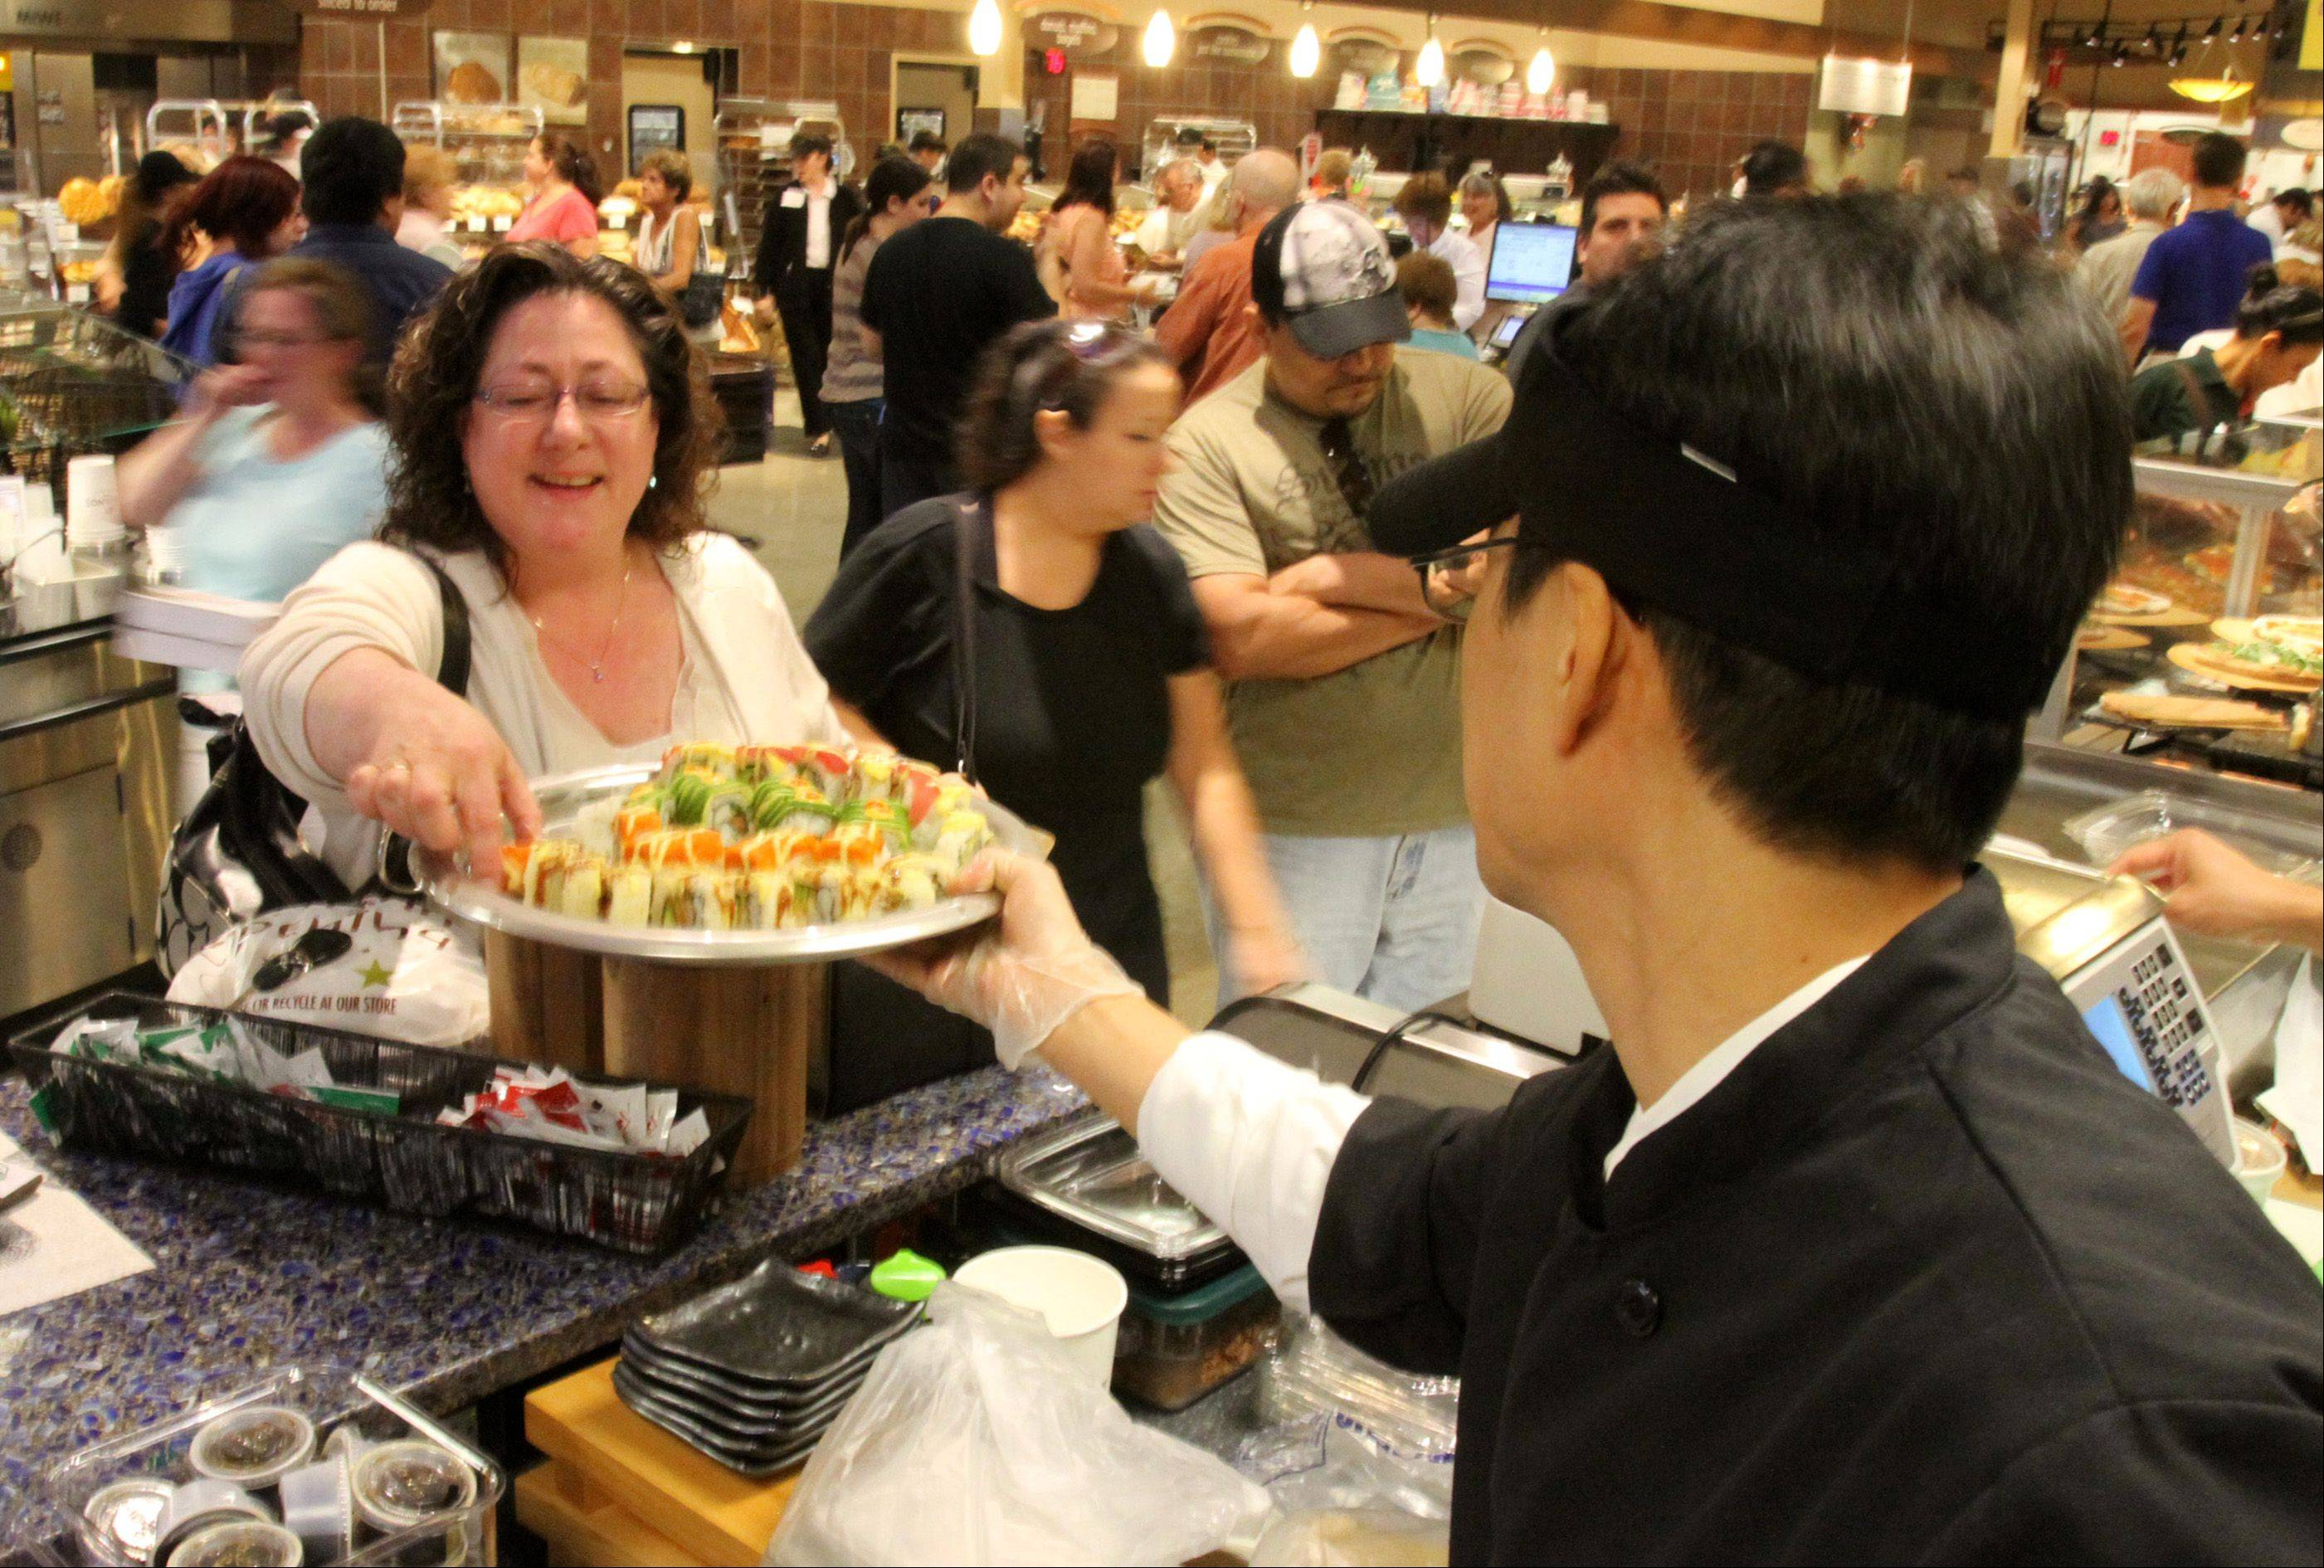 Laura Johnson of Elgin samples sushi from Brandon Lee at Mariano's Fresh Market in Hoffman Estates on Tuesday.